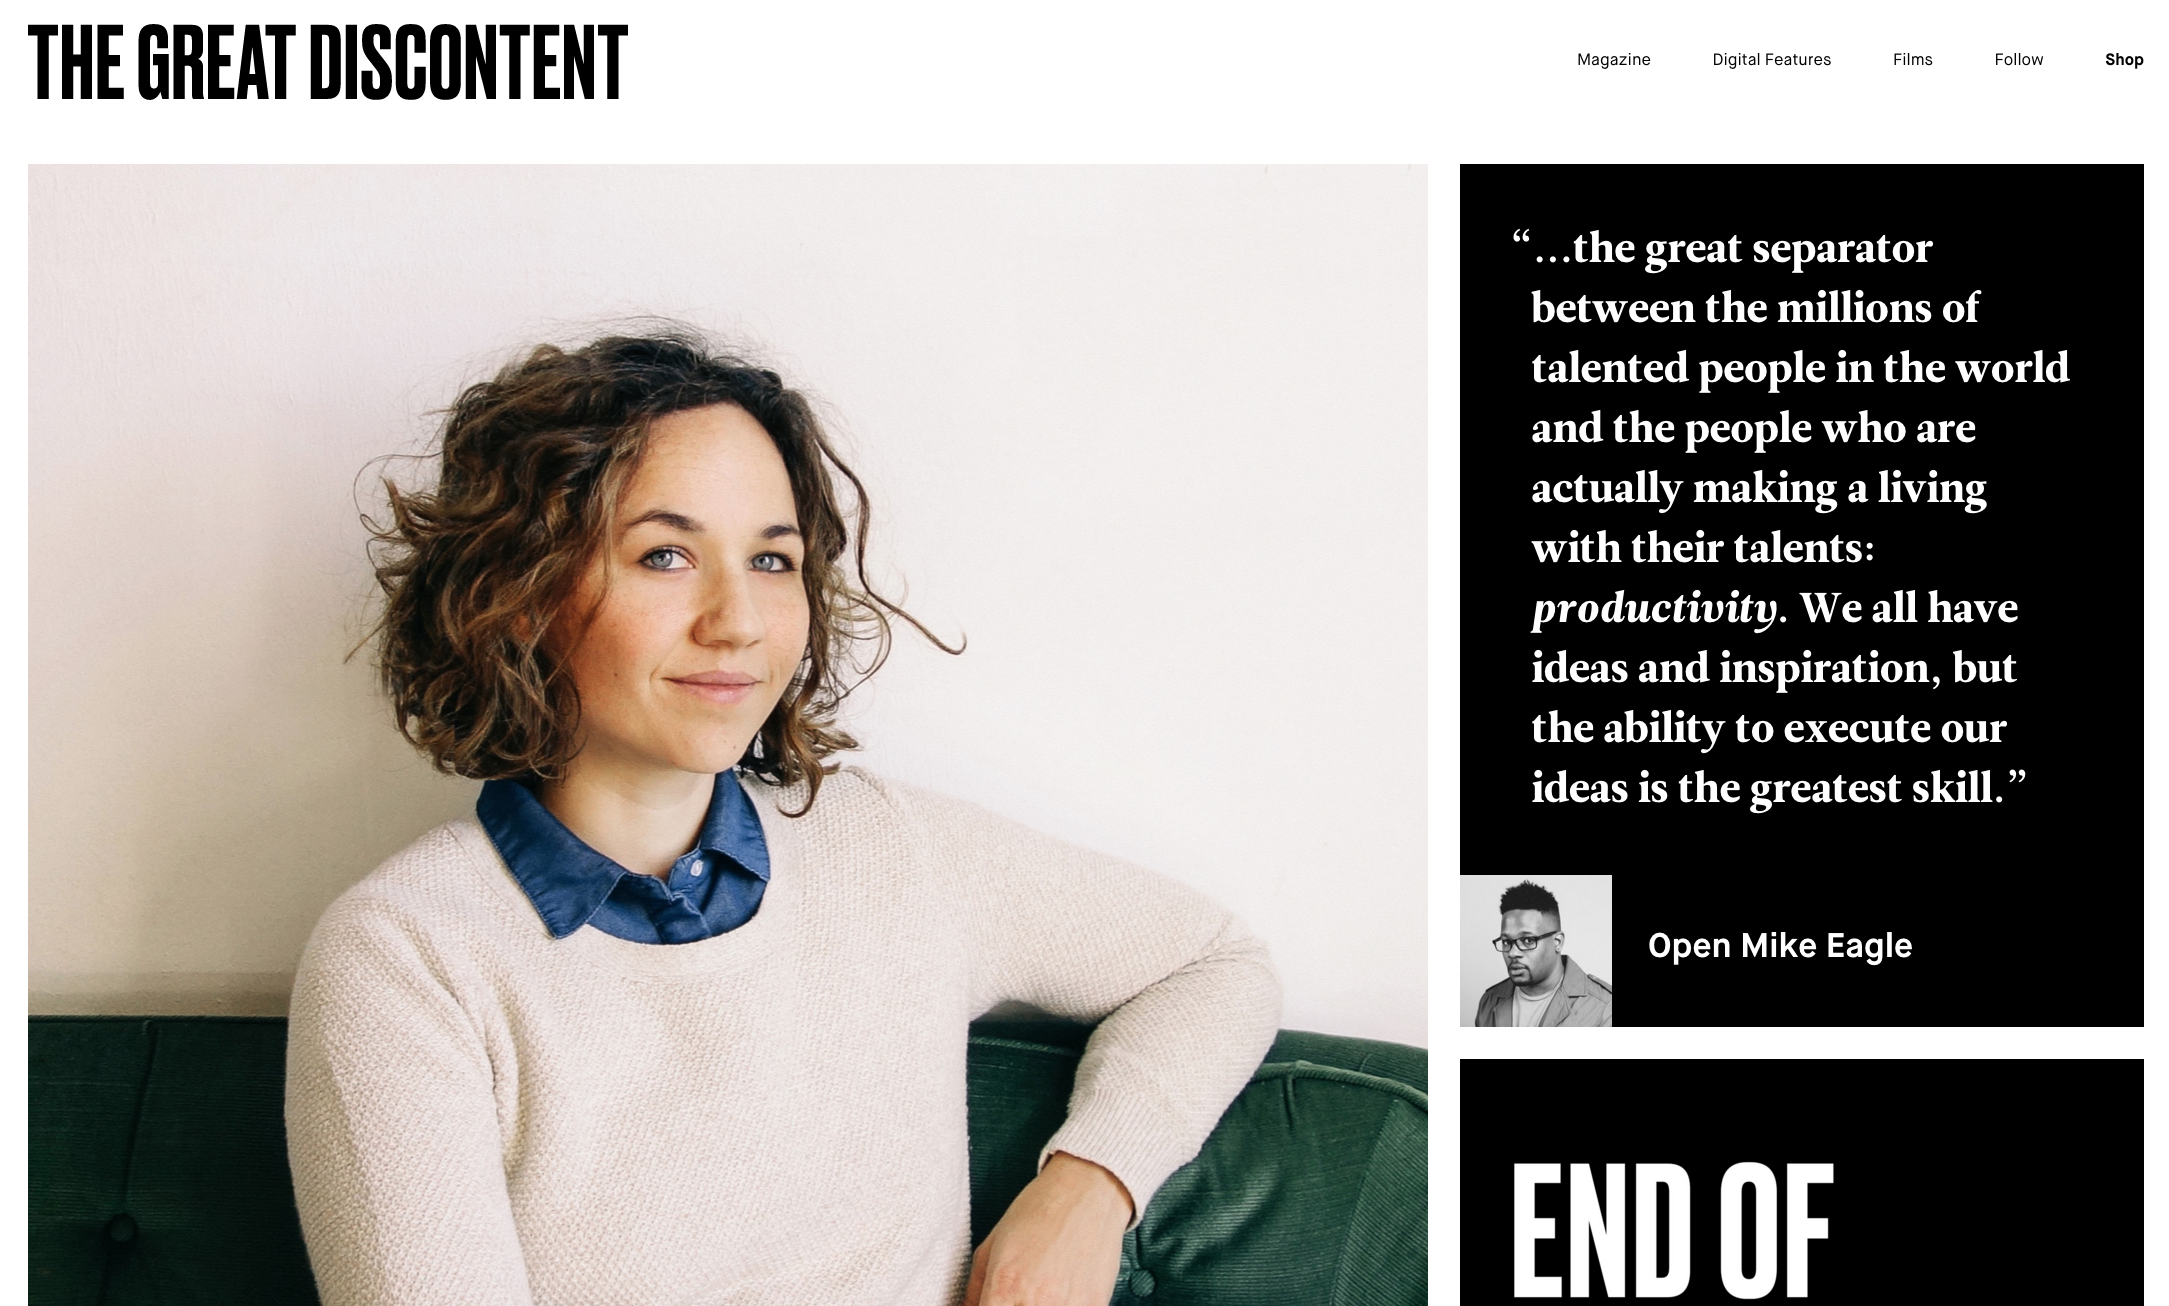 The Great Discontent's homepage